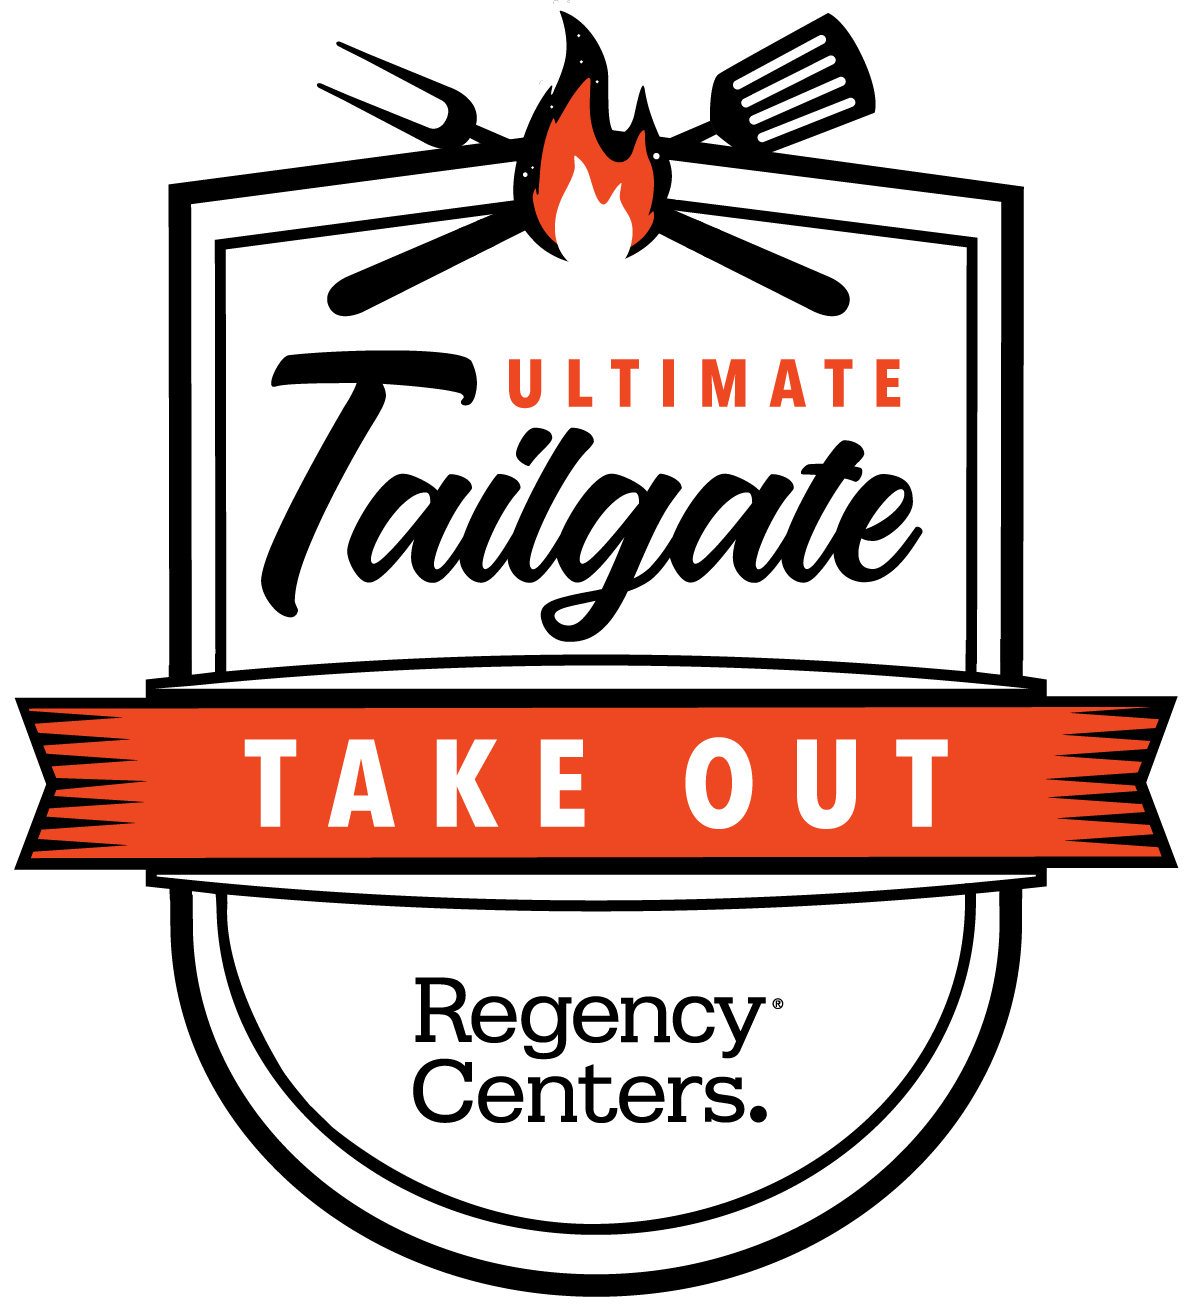 Tailgate-Takeout_logo_OUTLINES_Color-2